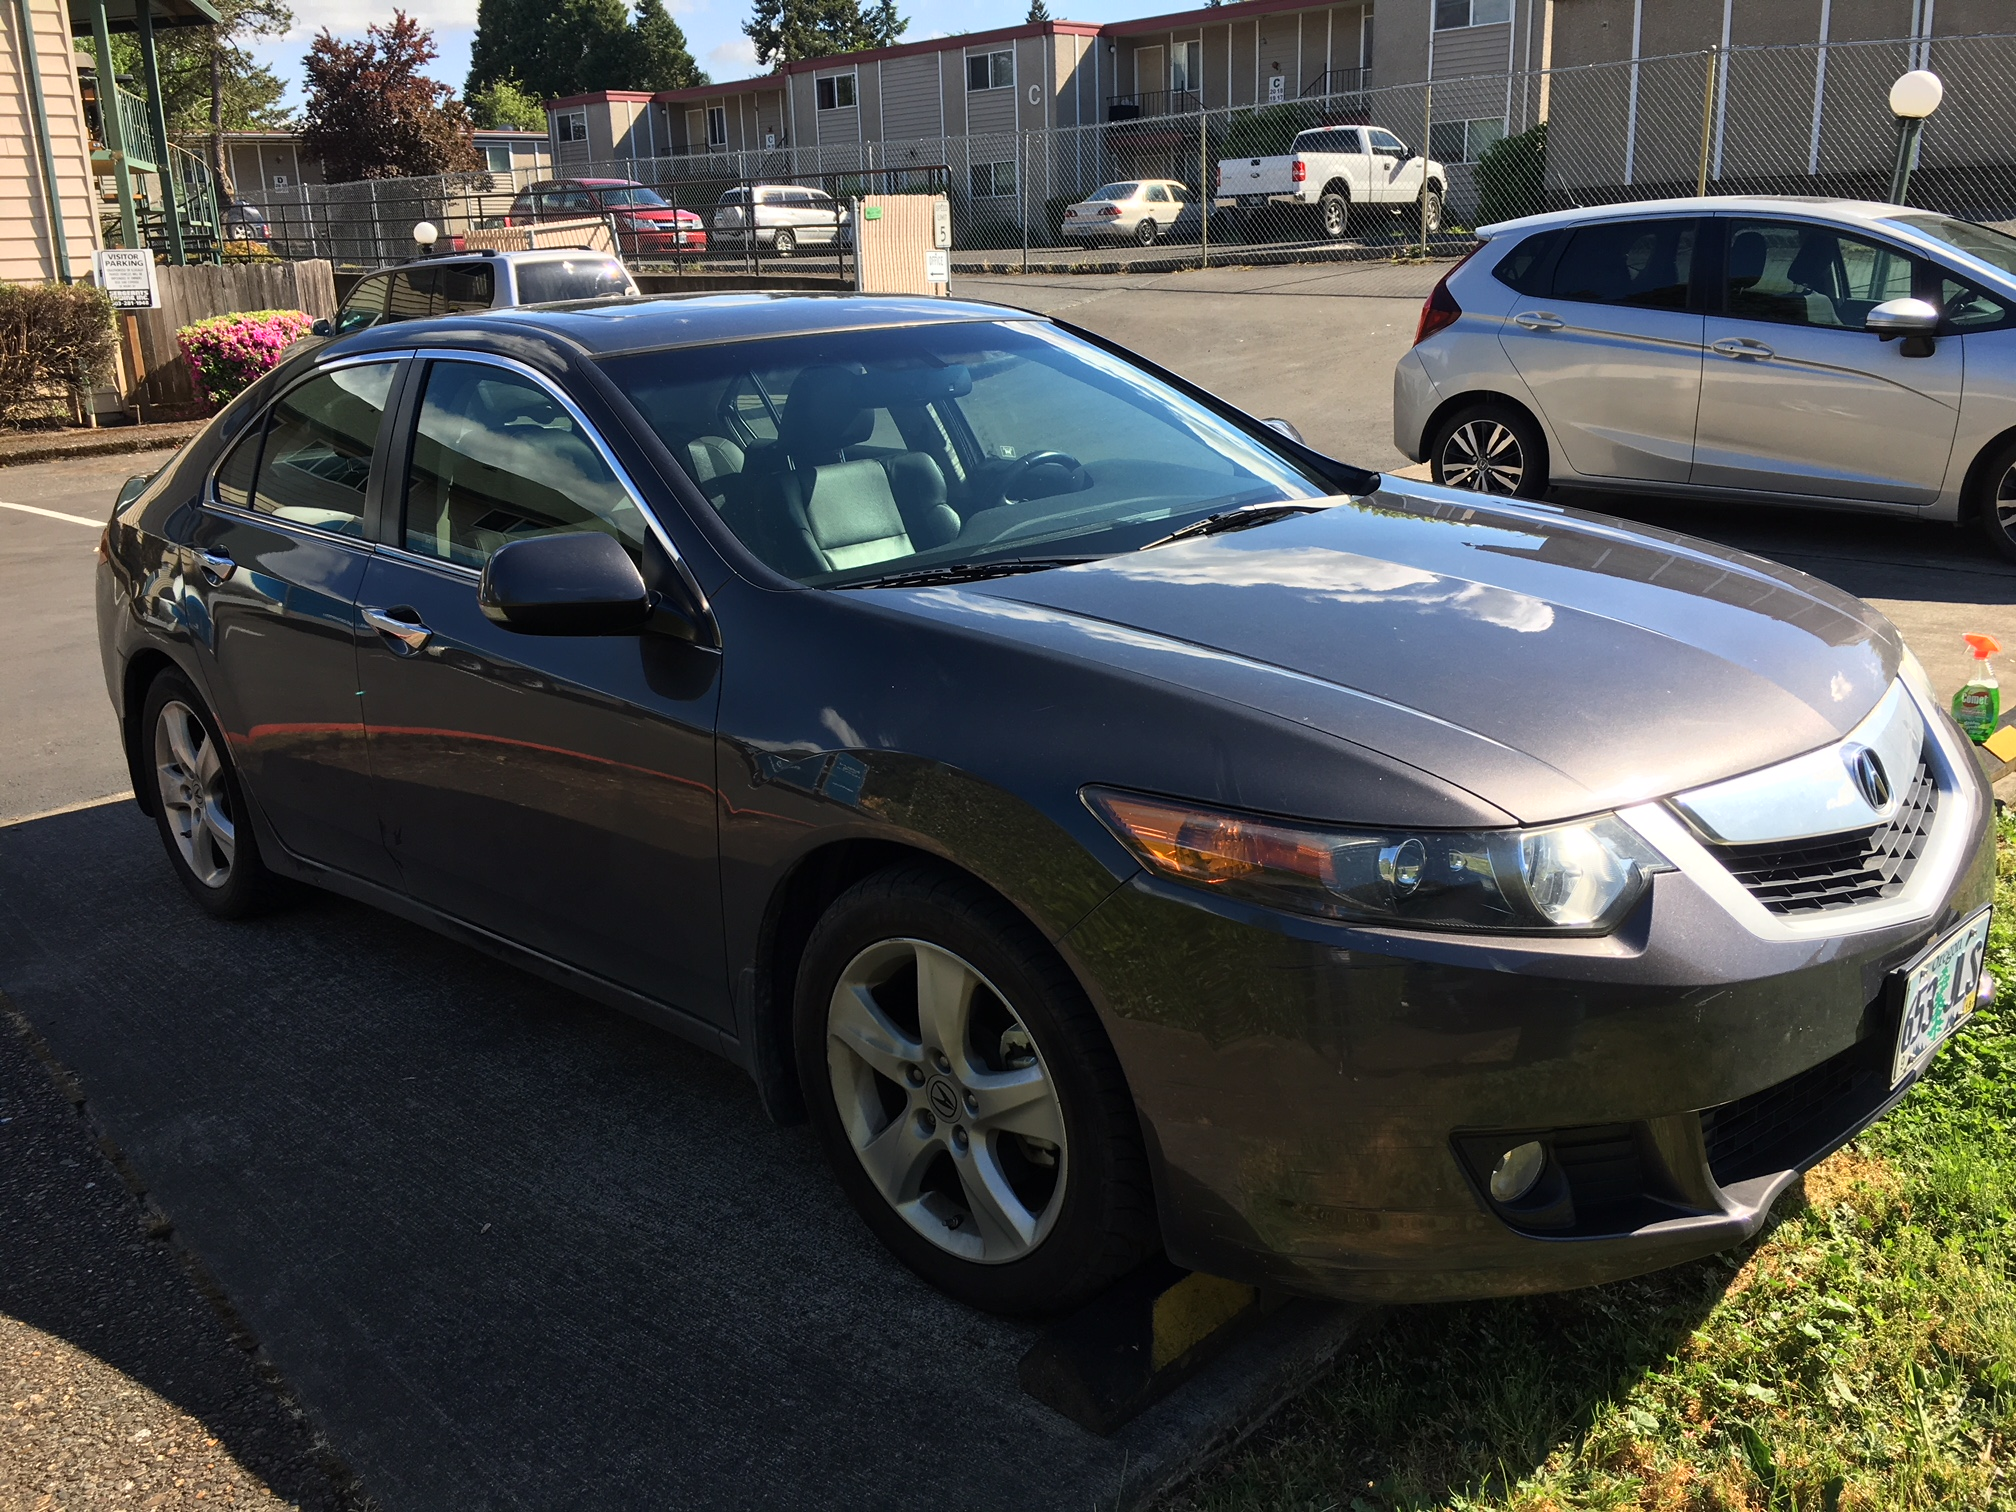 Used 2010 Acura TSX For Sale near 8400 Greenway Washington County